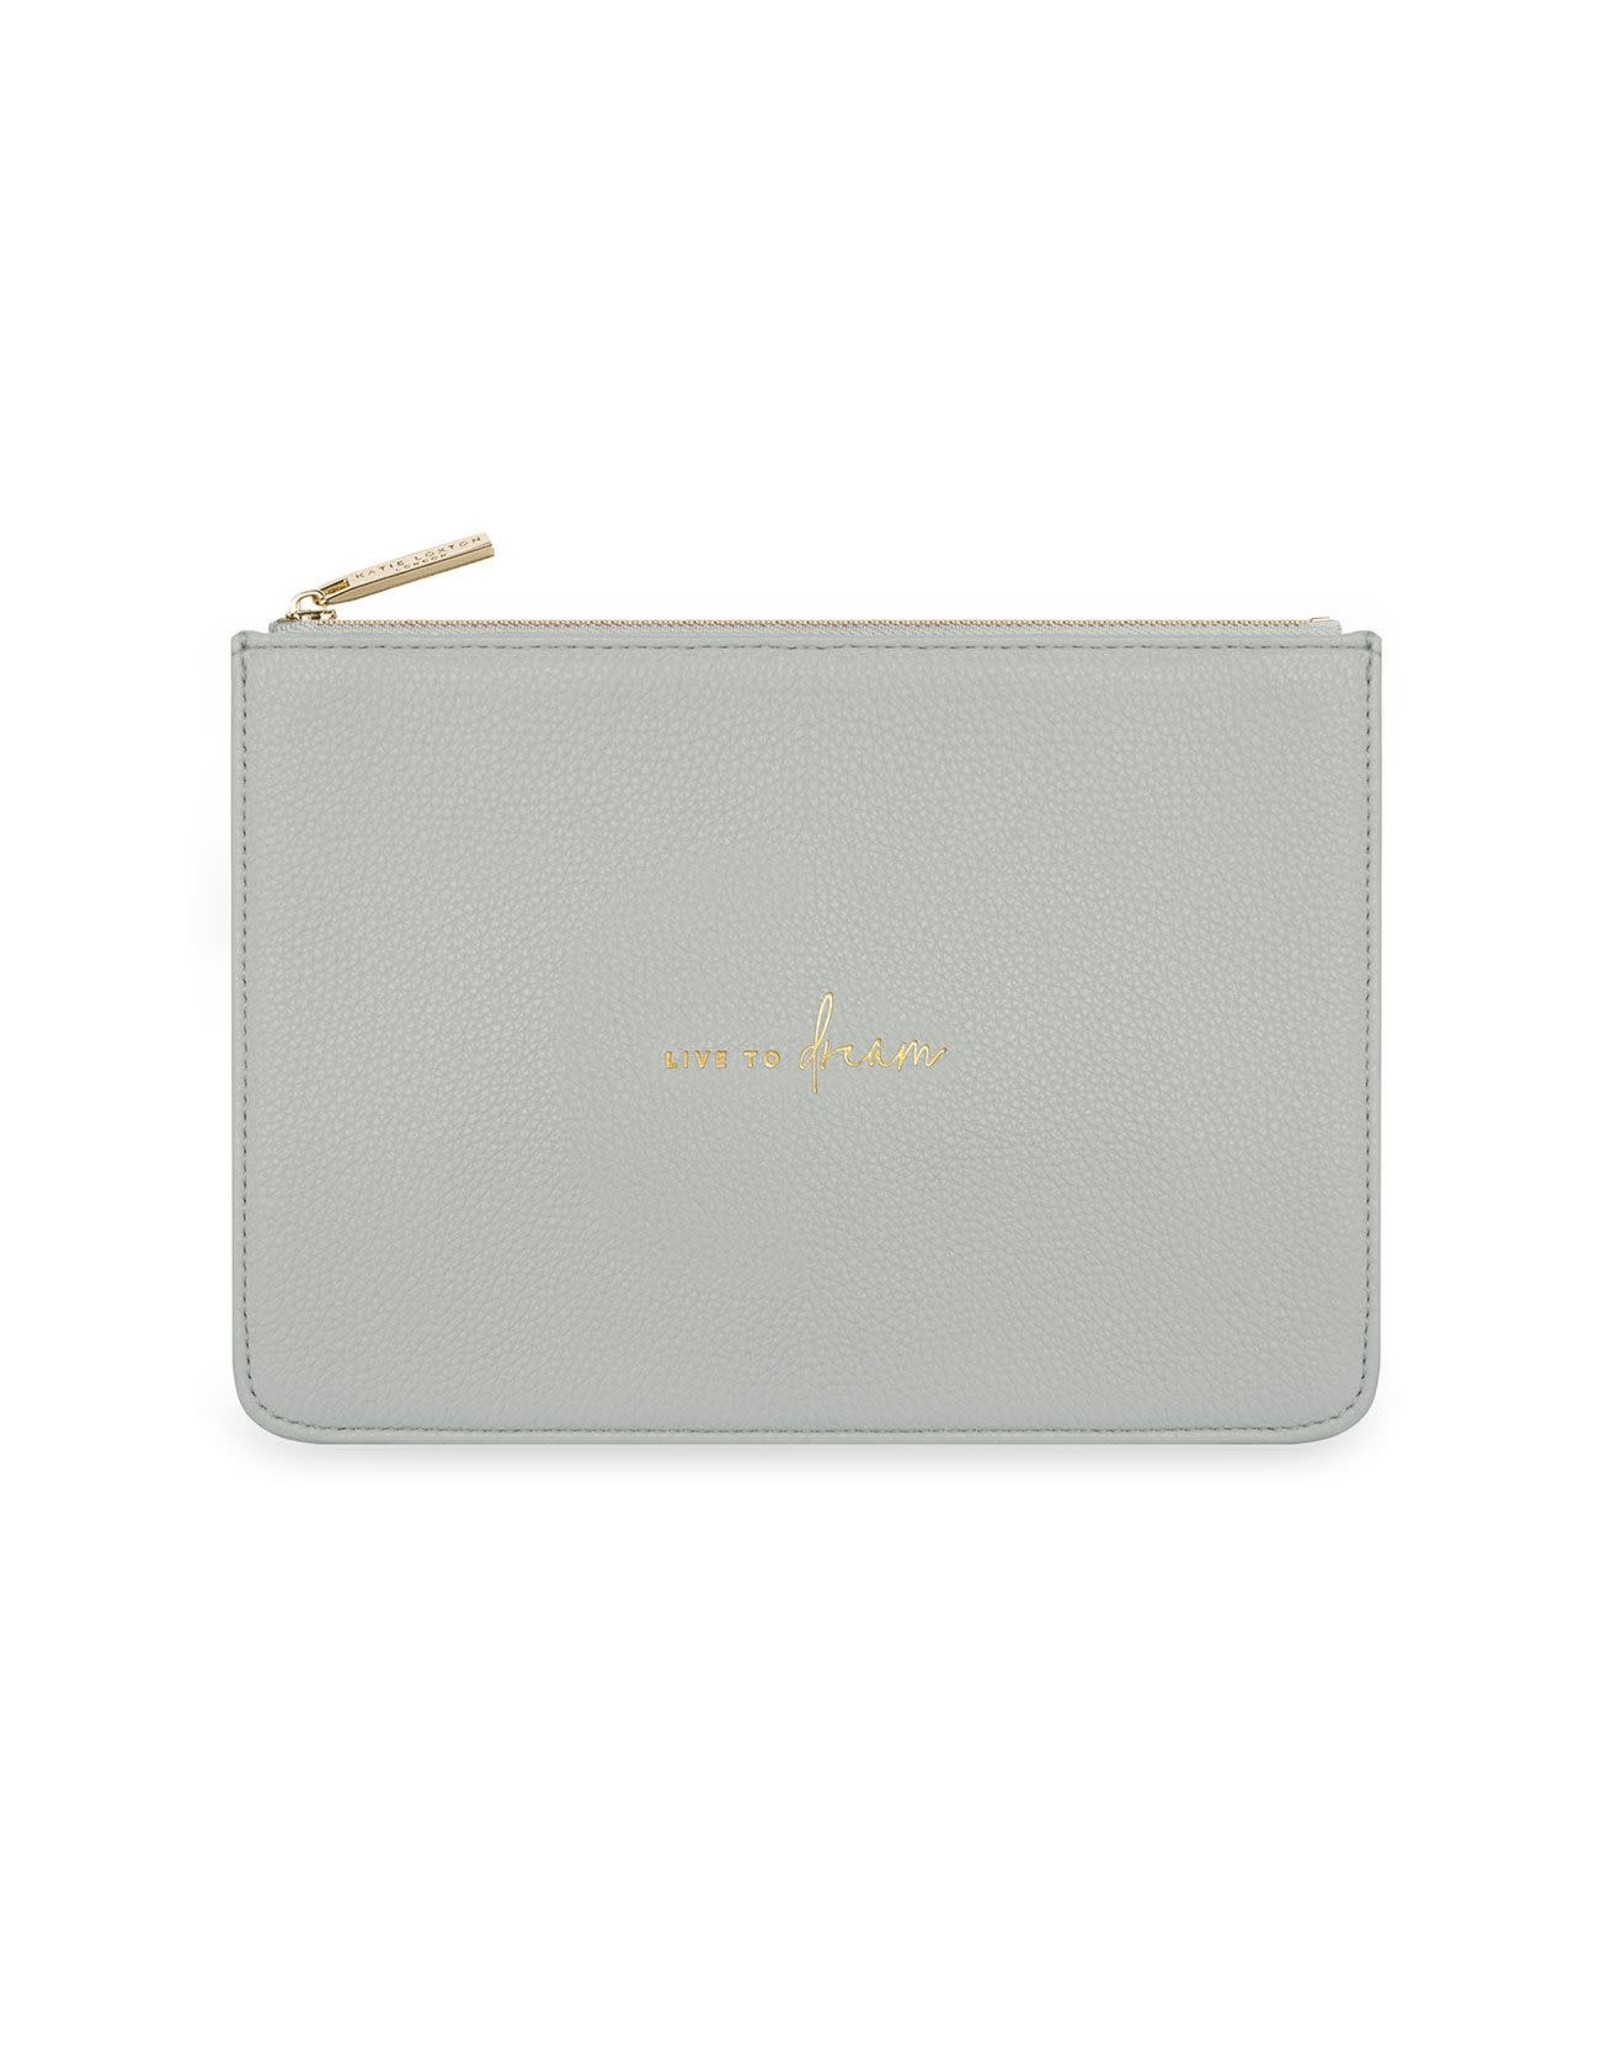 Katie Loxton Pochette - Live to Dream